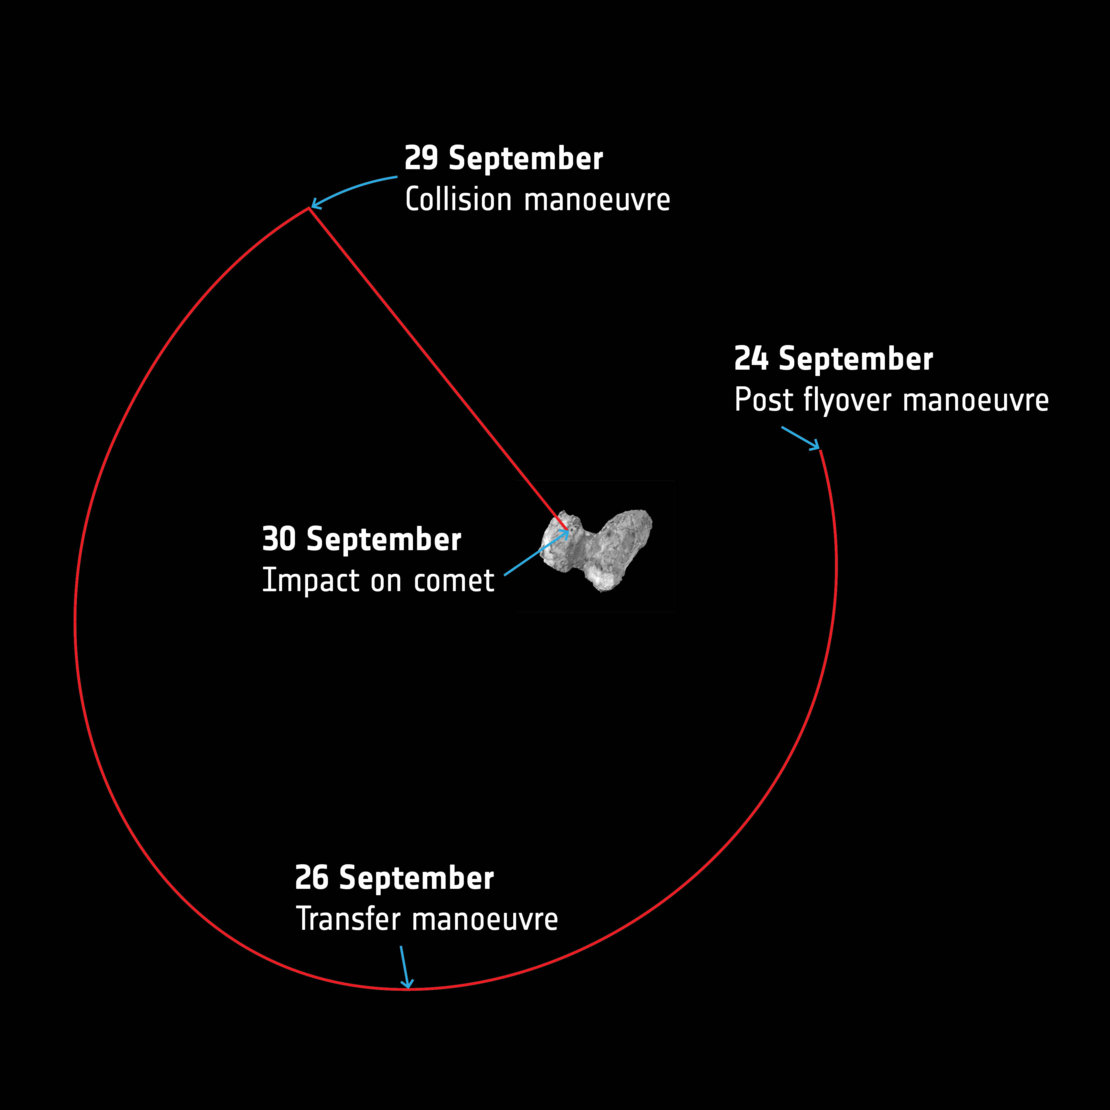 Rosetta - Dernieres manoeuvres - Collision manoeuvre - Transfer manoeuvre - Impact on comet - Post flyover - 24 September - 30 september - ESA